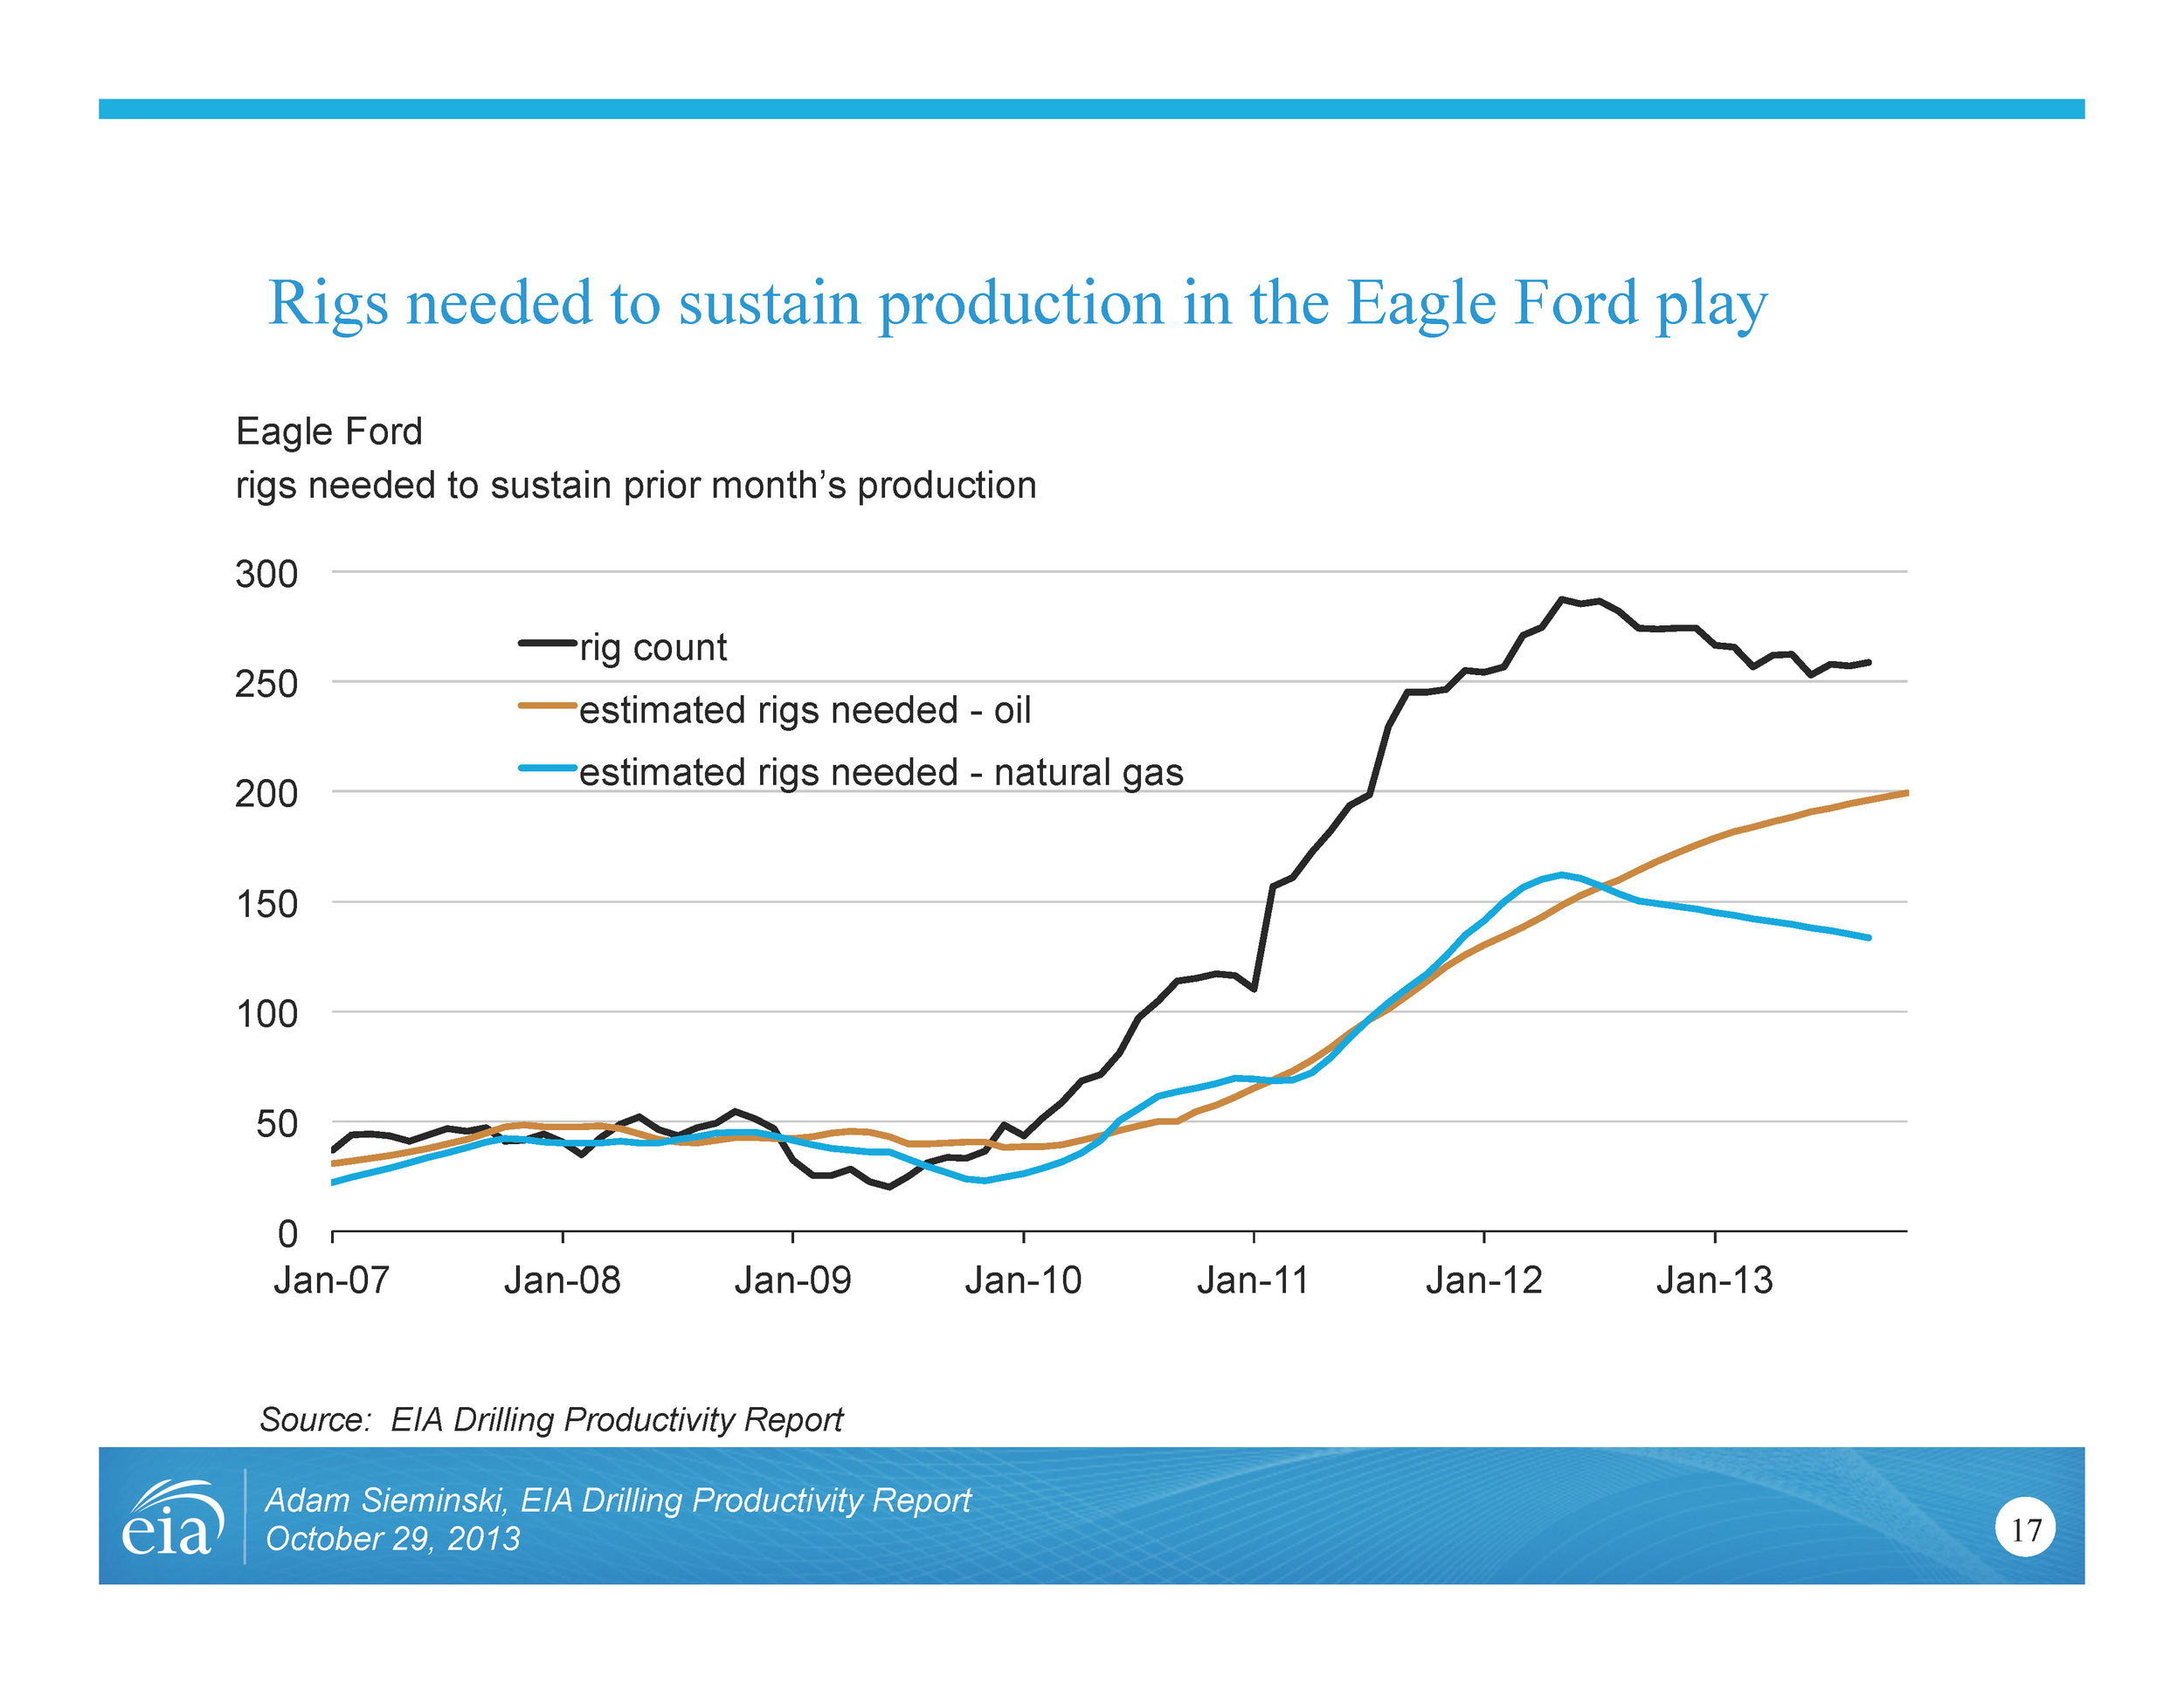 Image: Rigs needed to sustain production in the Eagle Ford play (Source: EIA Drilling Productivity Report presentation, 2013)